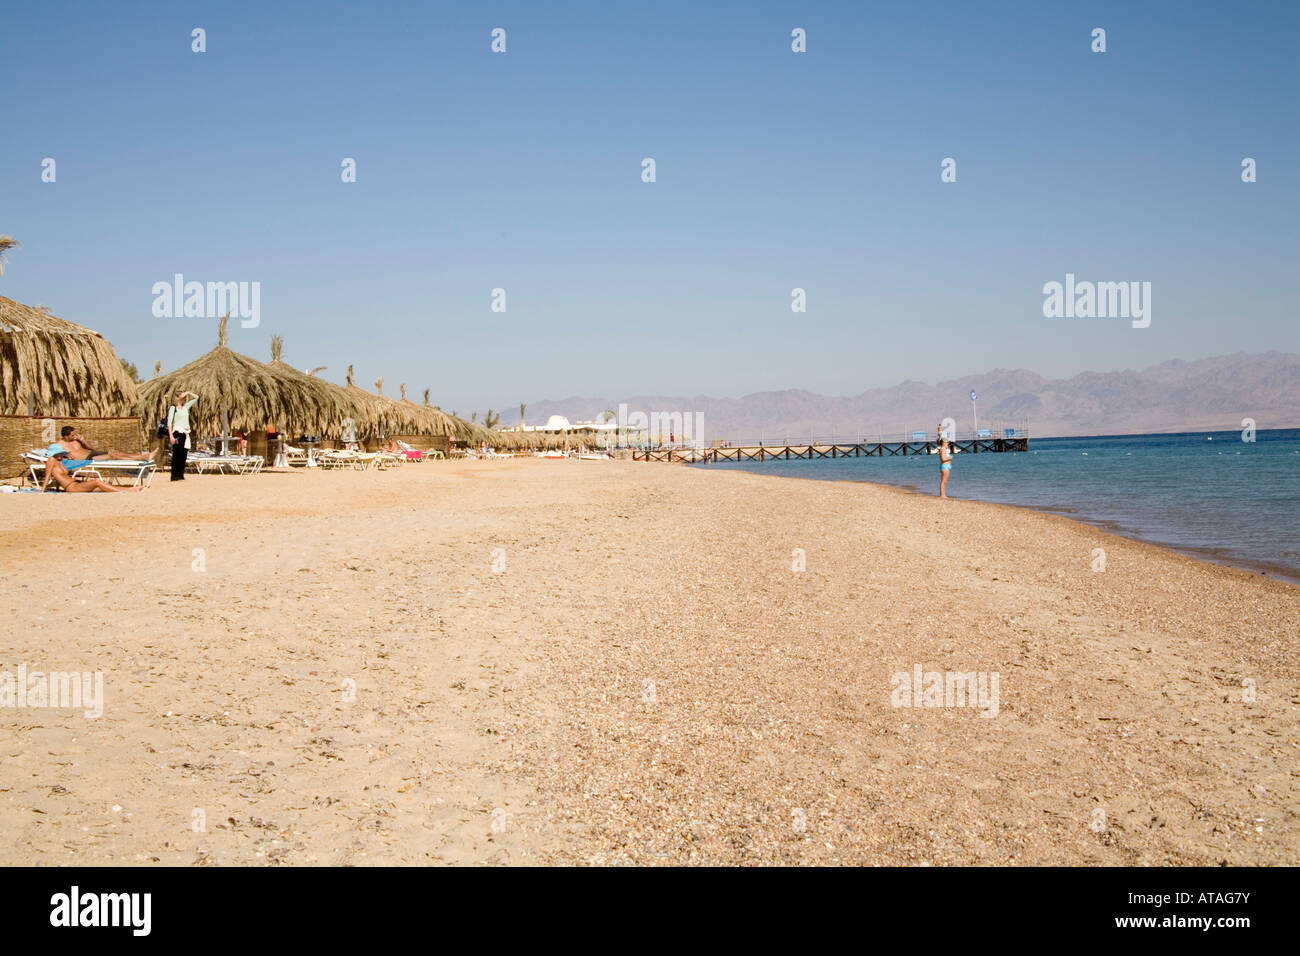 Nuweiba Sinai Egypt North Africa February Looking along the private beach of a luxury hotel on the Gulf of Aqaba - Stock Image